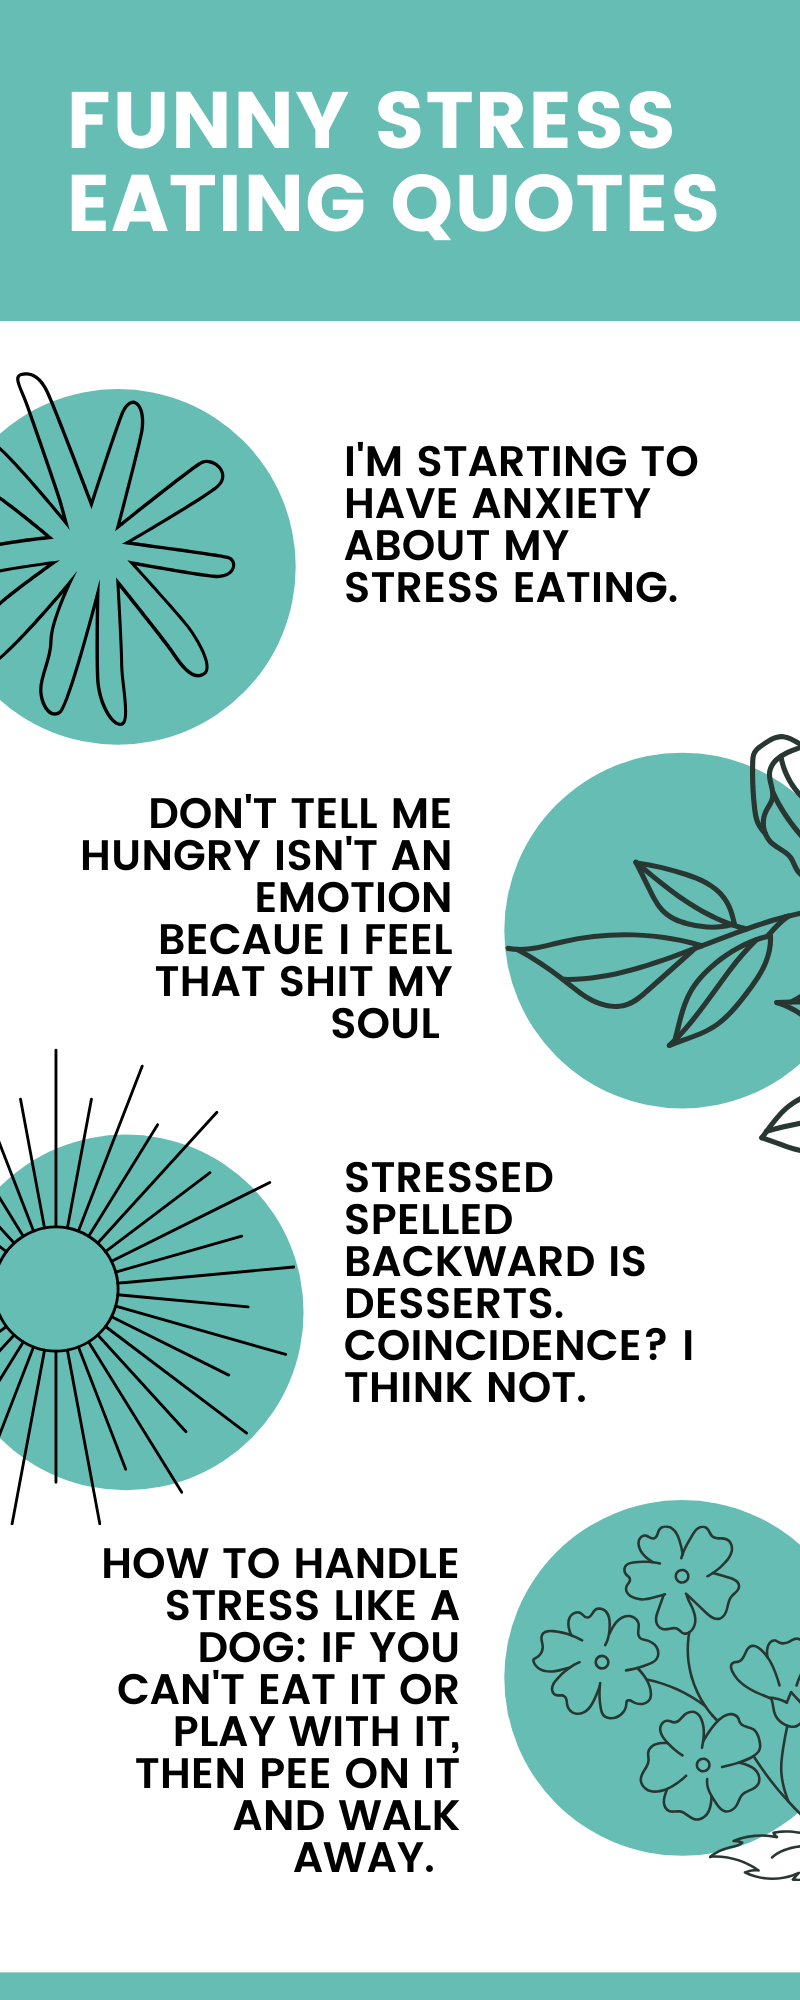 Funny Quotes About Stress Eating